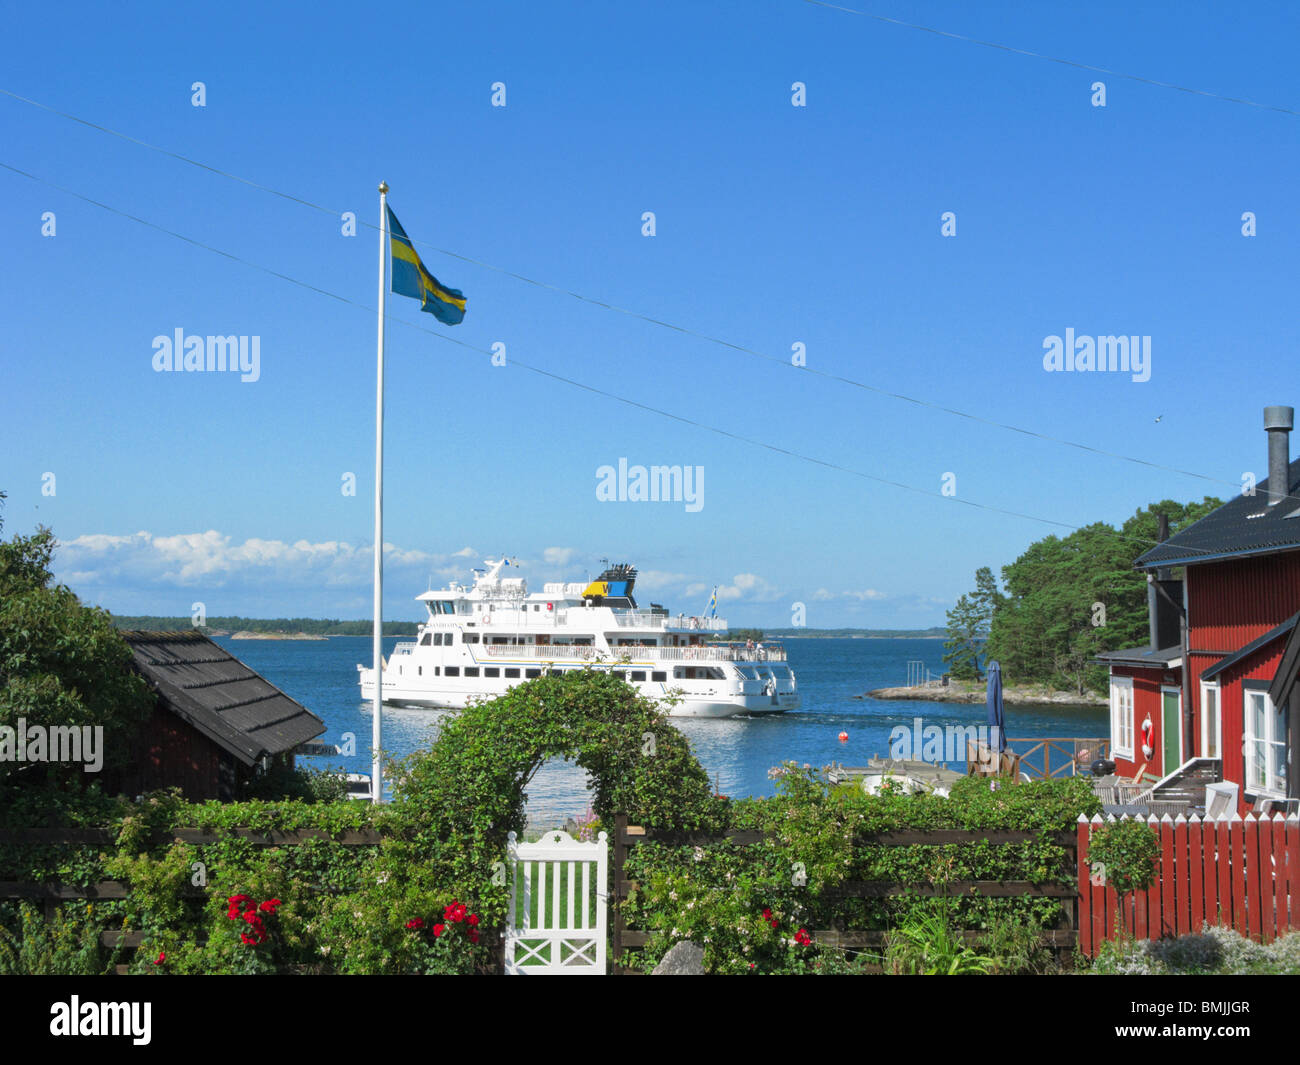 Scandinavia, Sweden, Stockholm, Sandhamn, View of ferry on sea with Swedish flag on foreground - Stock Image